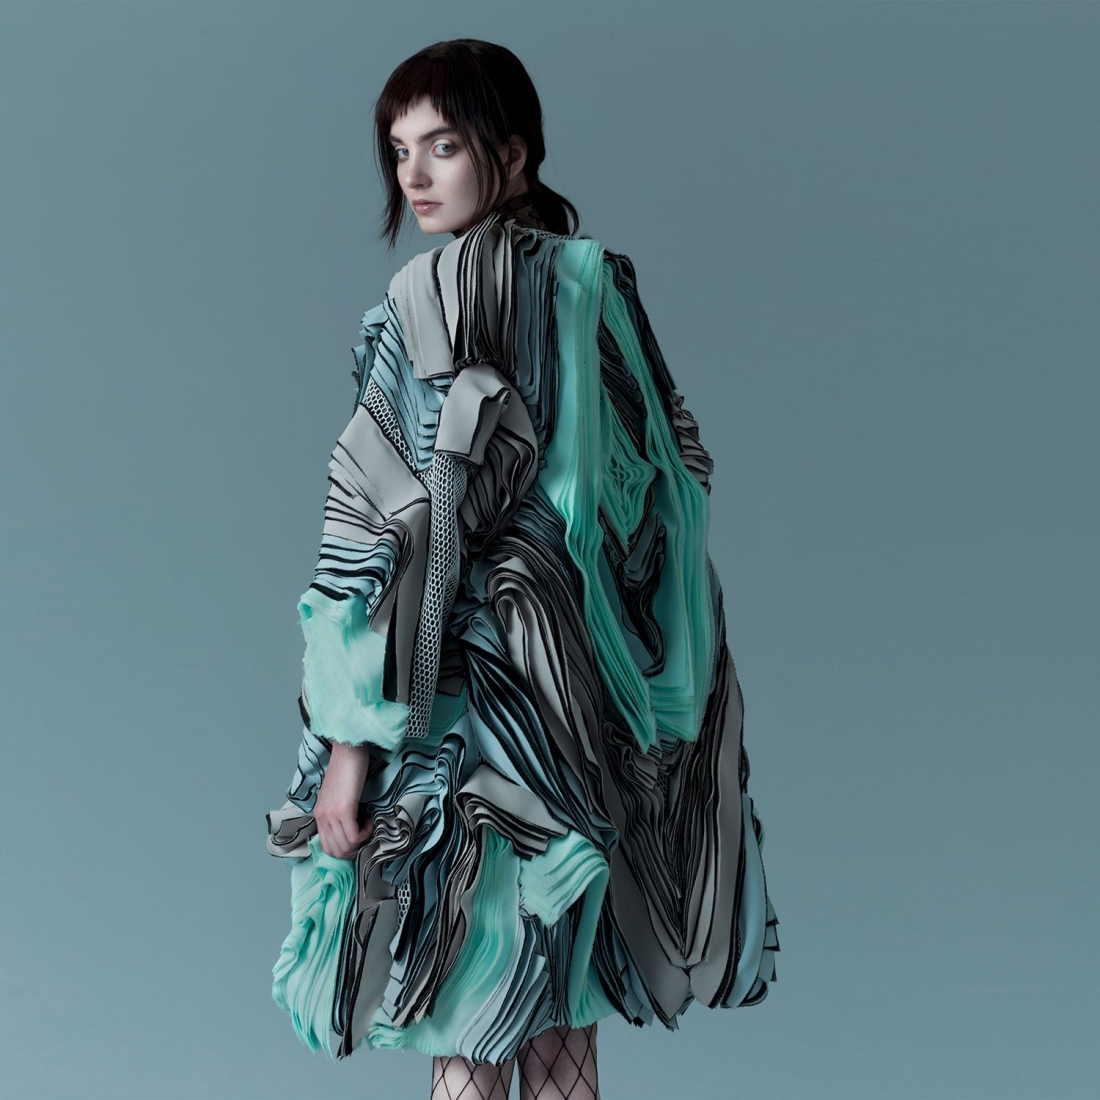 Traces Womenswear Collection by Rong Zhang – Platinum A' Design Award